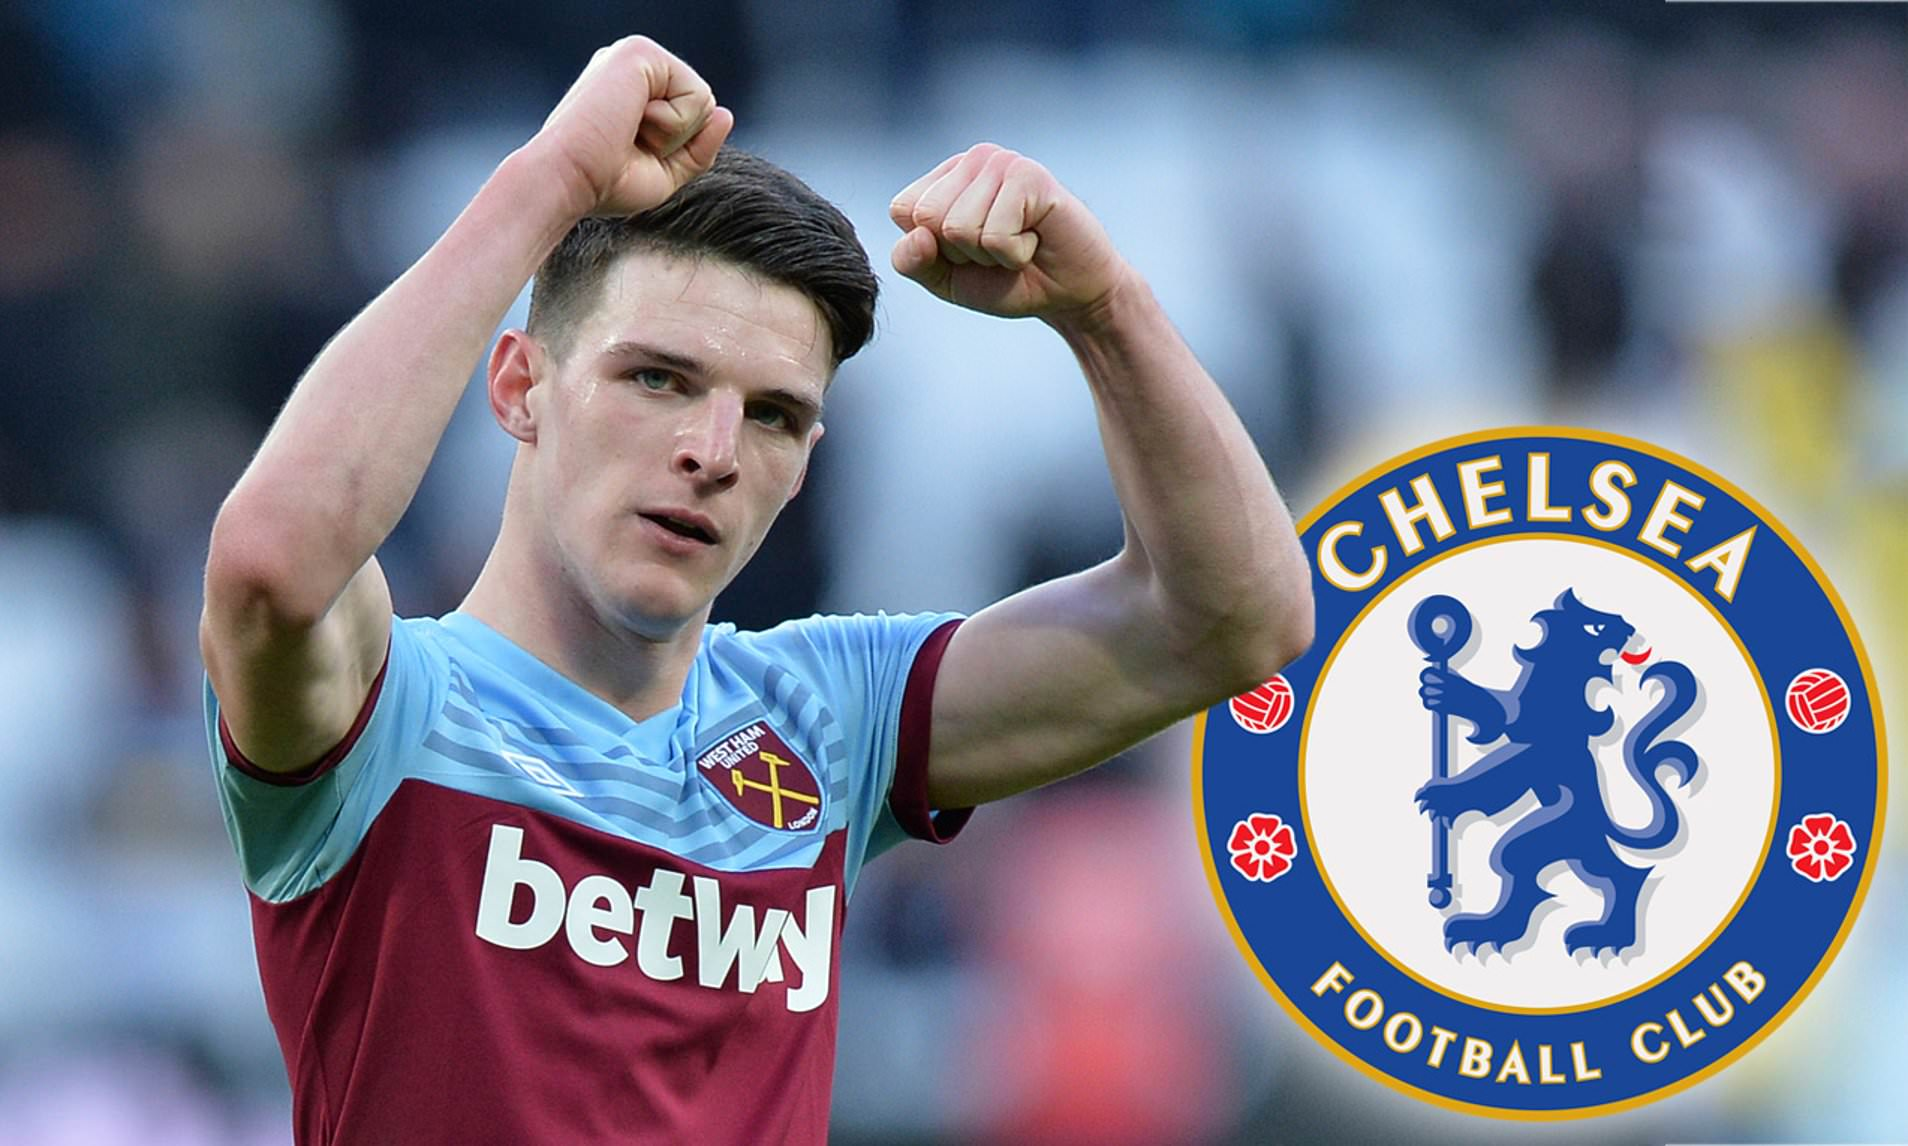 Chelsea Latest News And Transfer Update For Today 9th September 2021